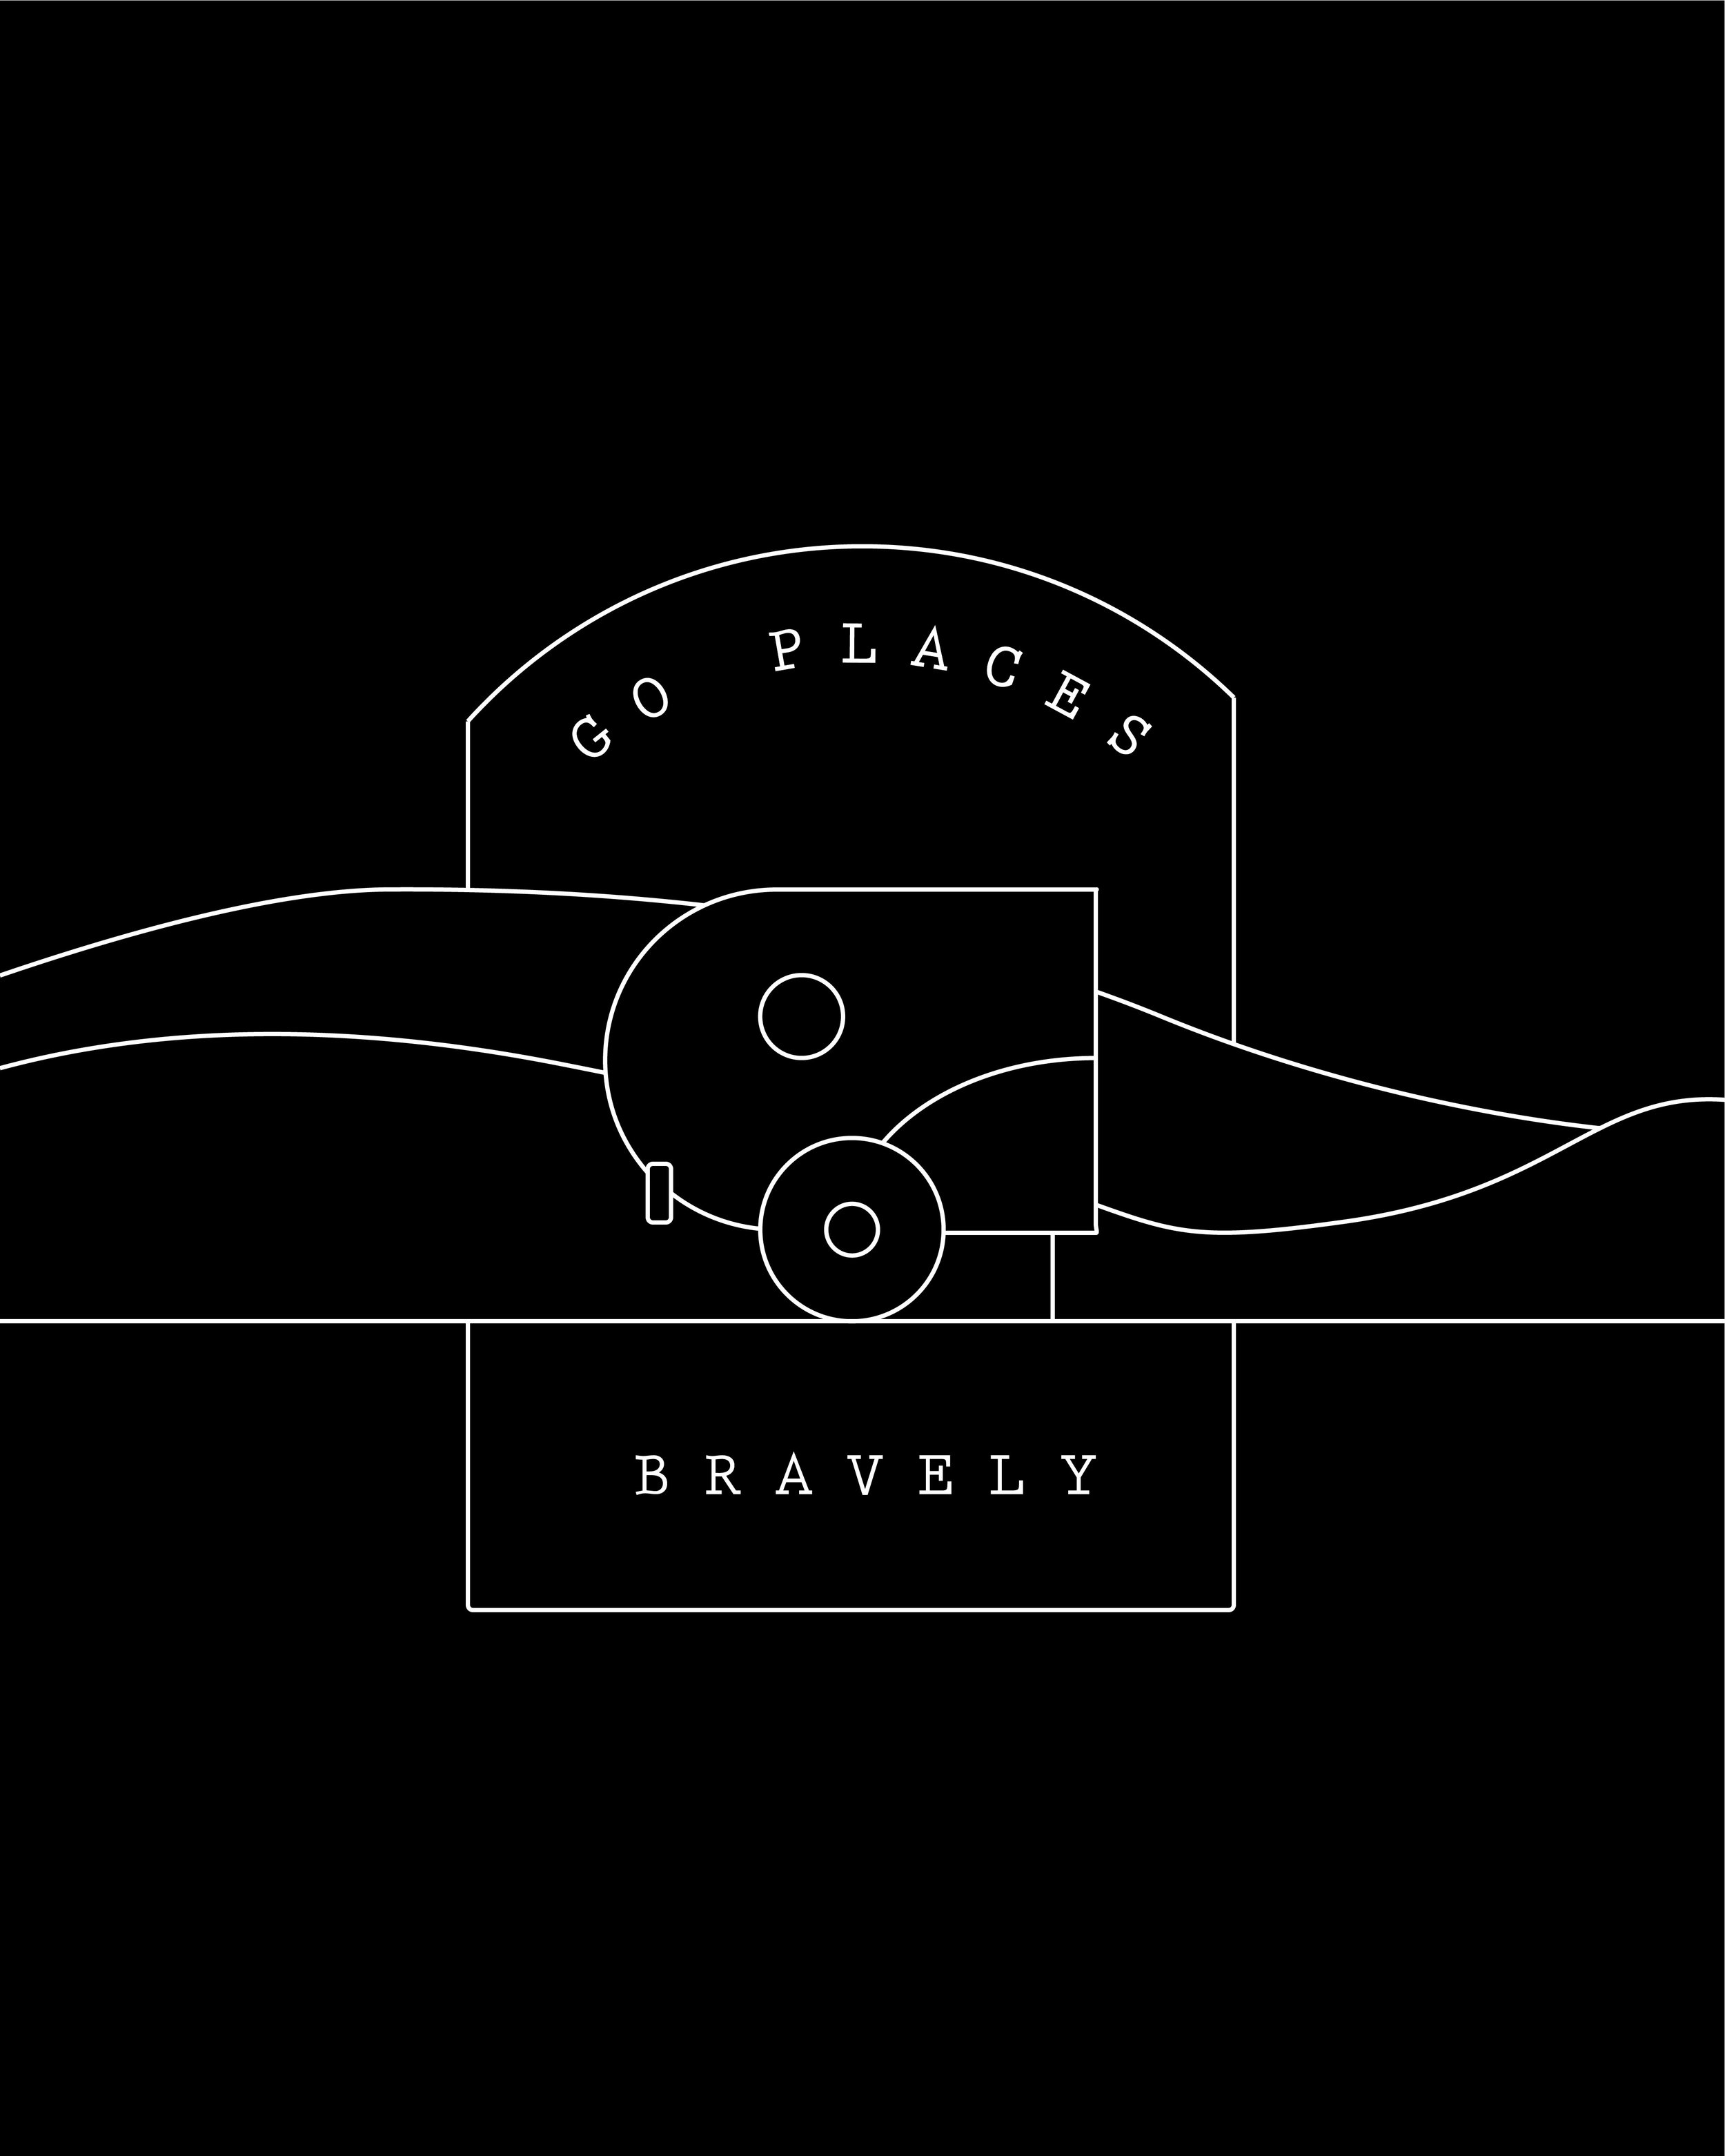 Go-Places-Bravely.jpg